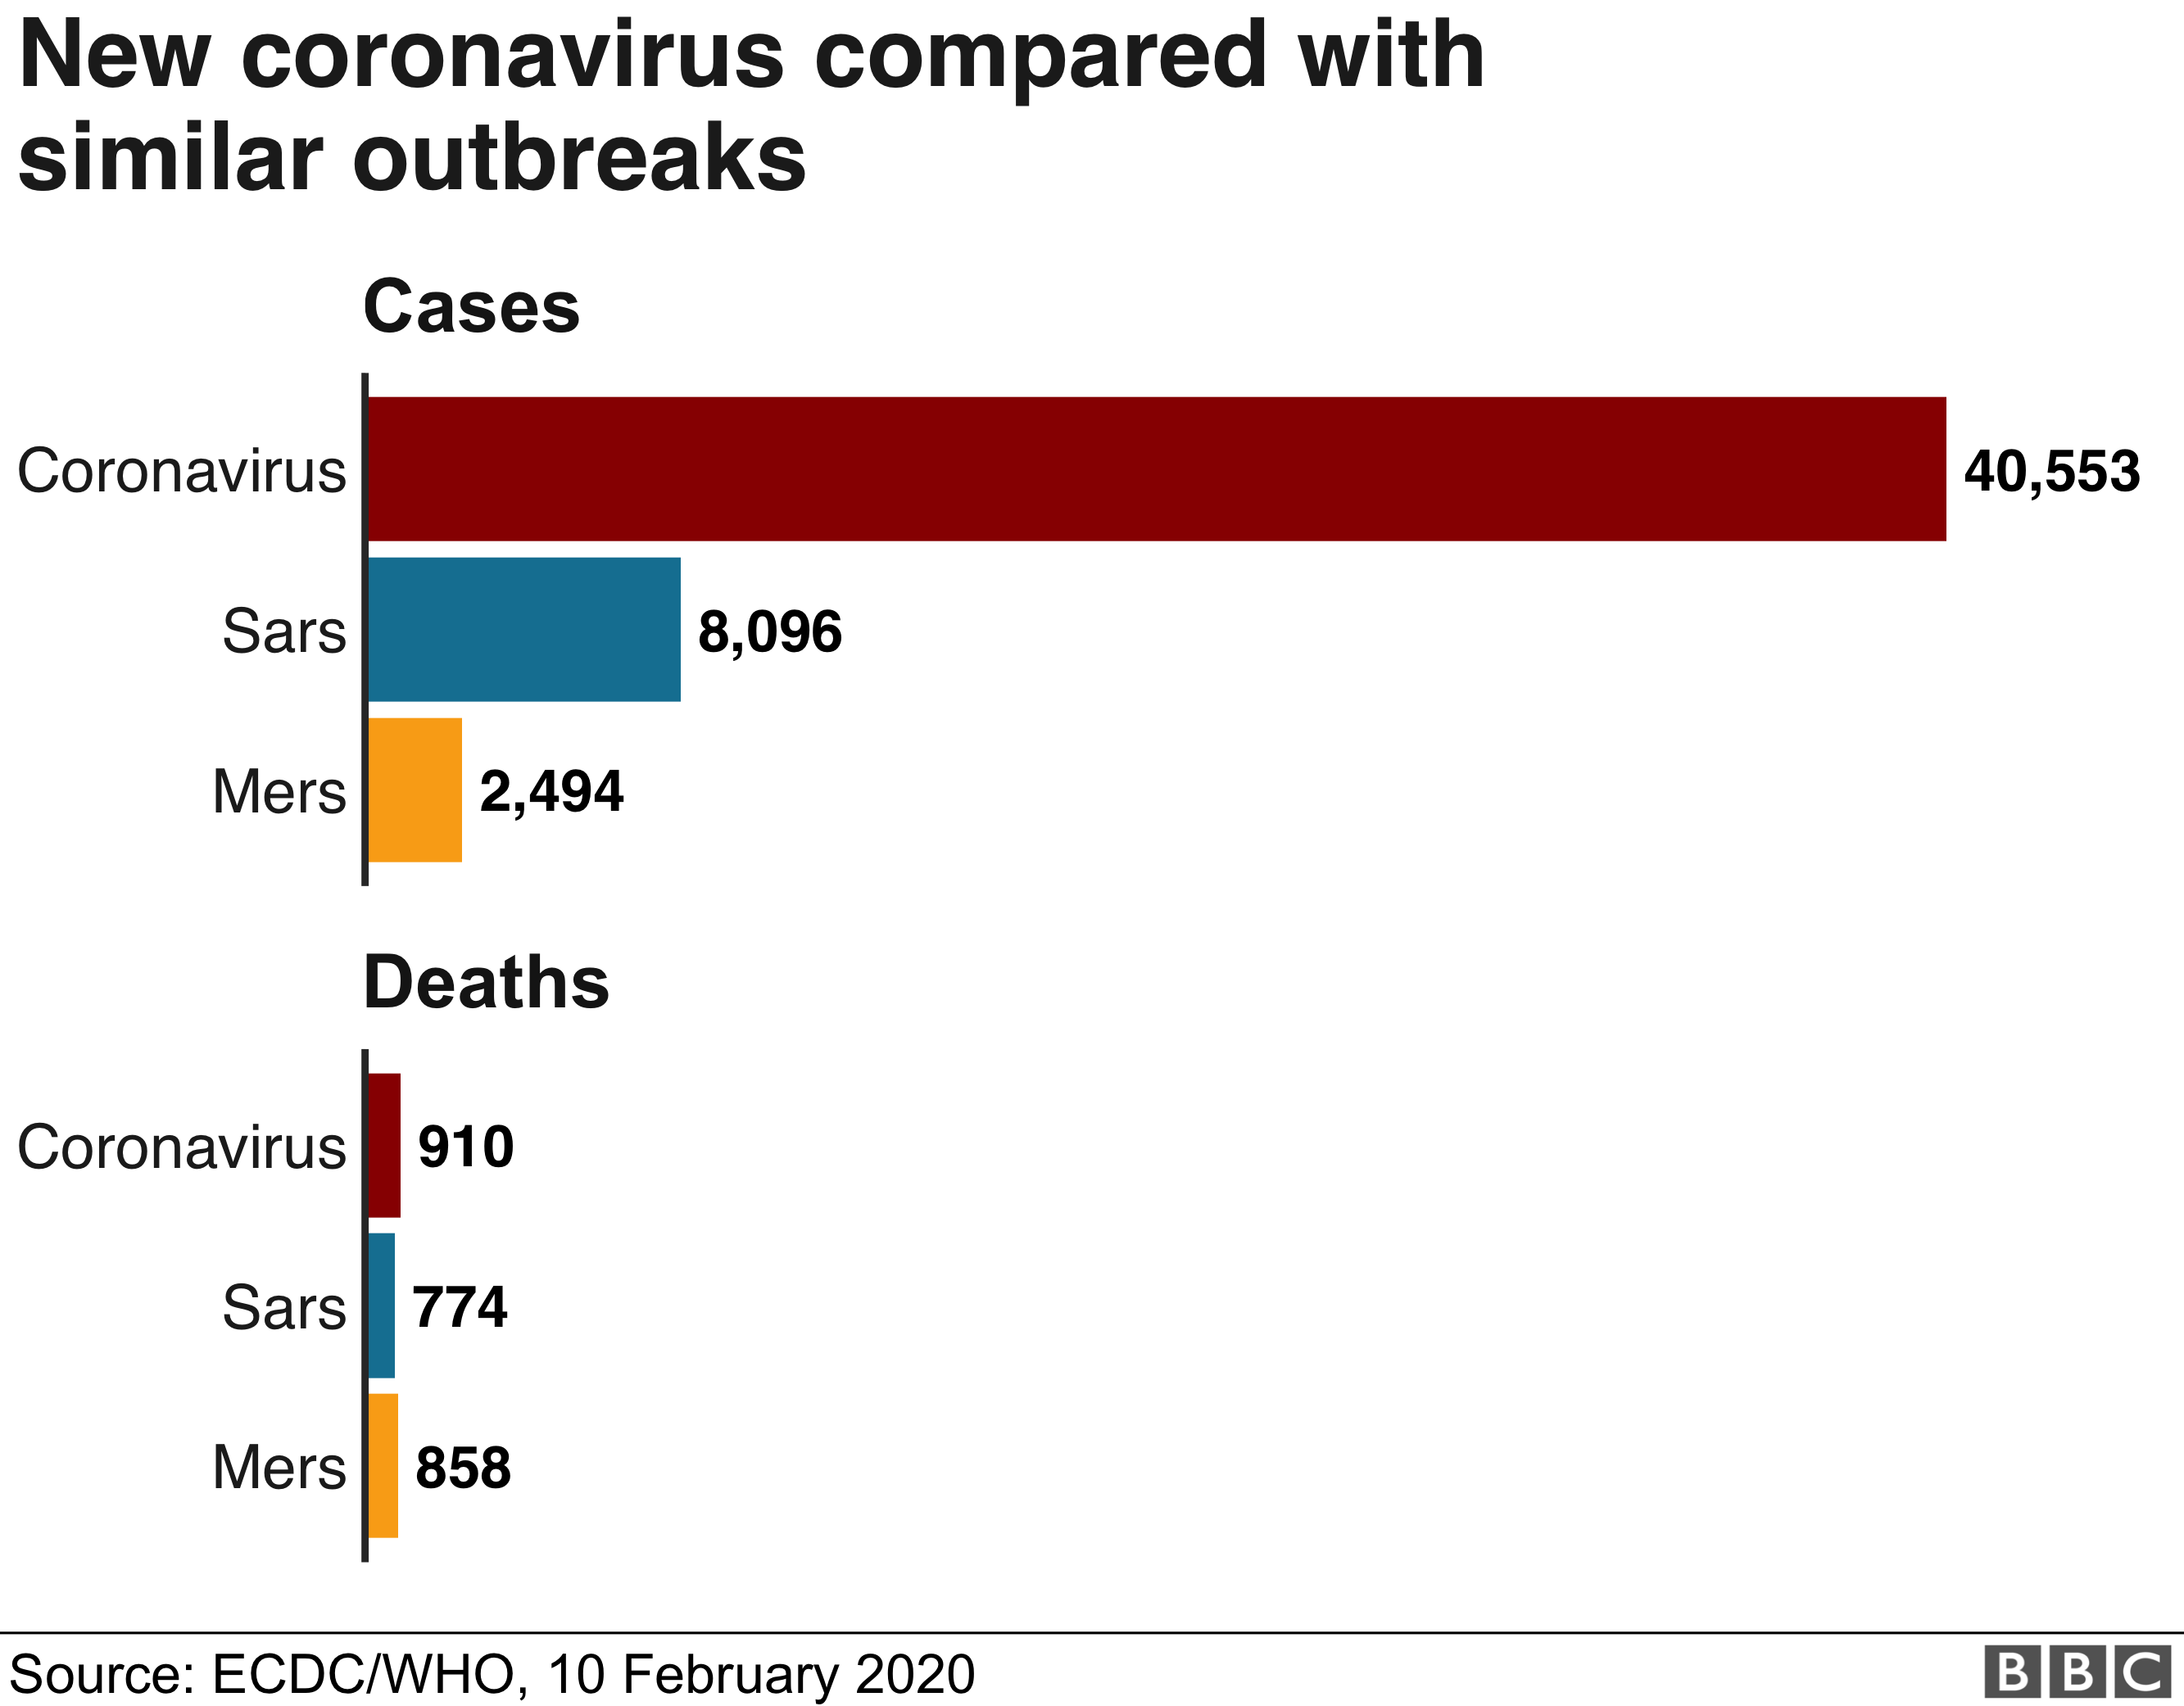 Chart comparing the Coronavirus, Sars and Mers